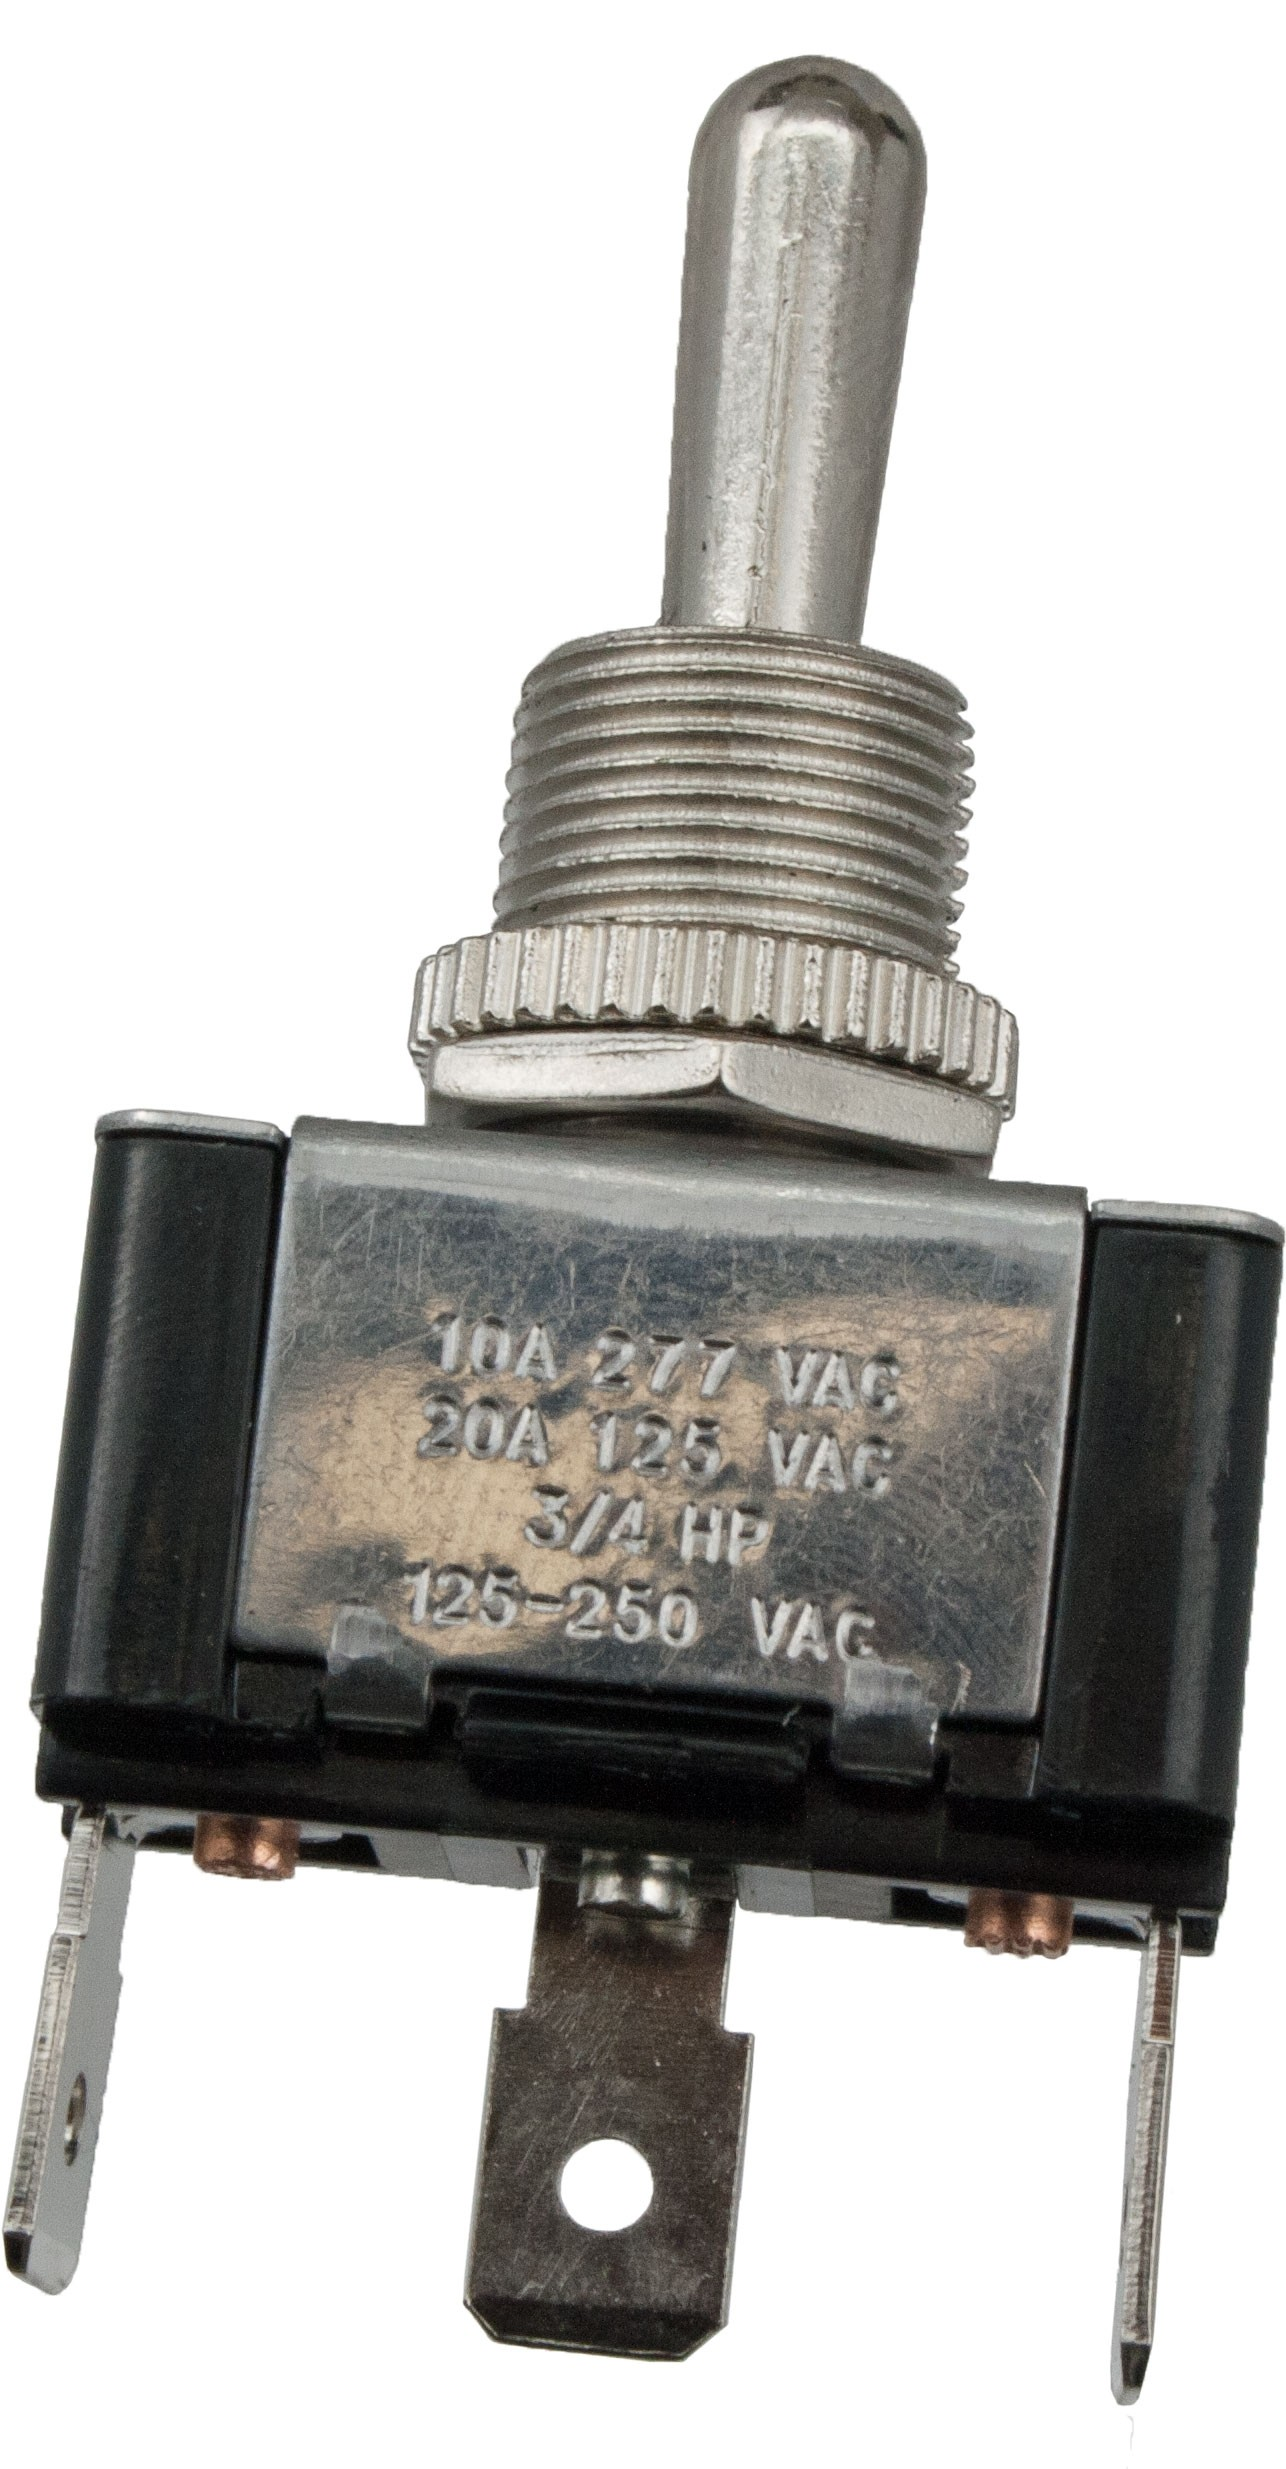 3 Blade Terminal Toggle Switch Momentary Mom On Off Spdt Spst 125vac Wiring Diagram More Views